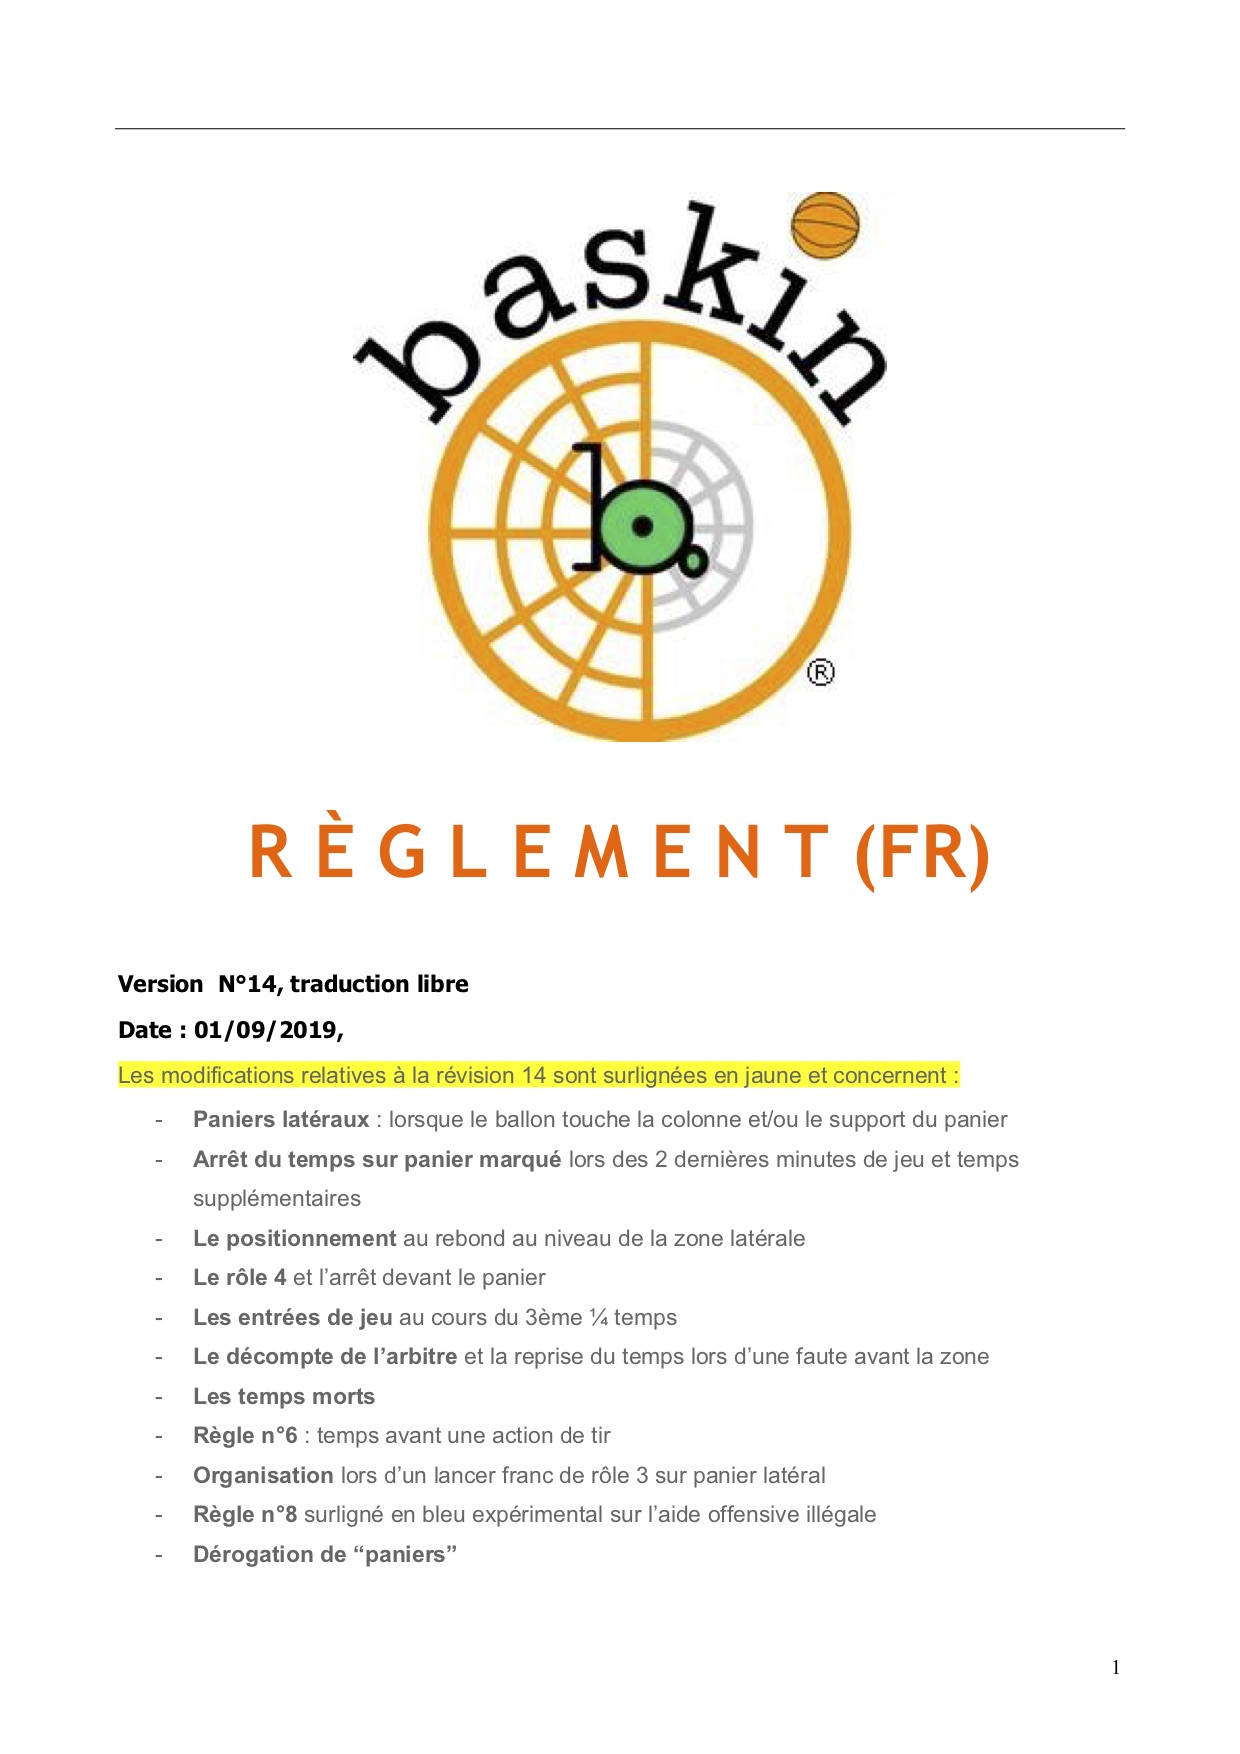 FR REGLEMENT BASKIN 2020 traduction libre